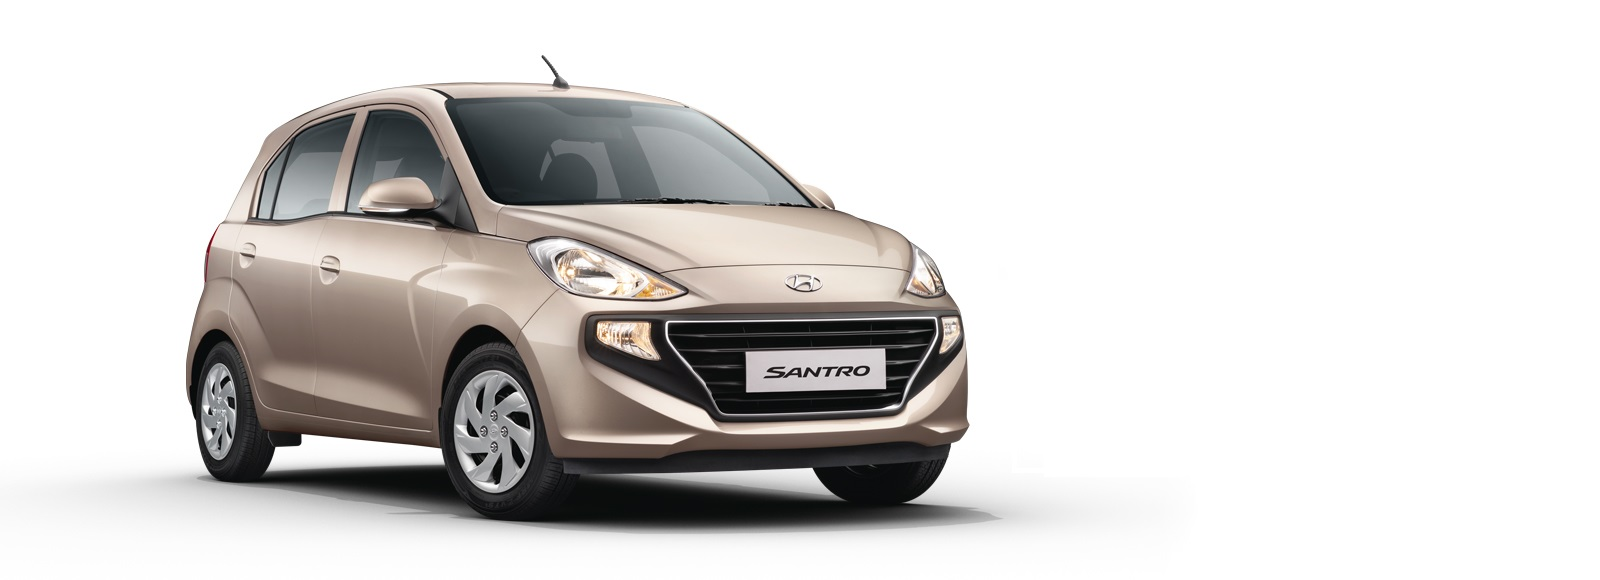 Side front view of the all new Santro car in Nepal